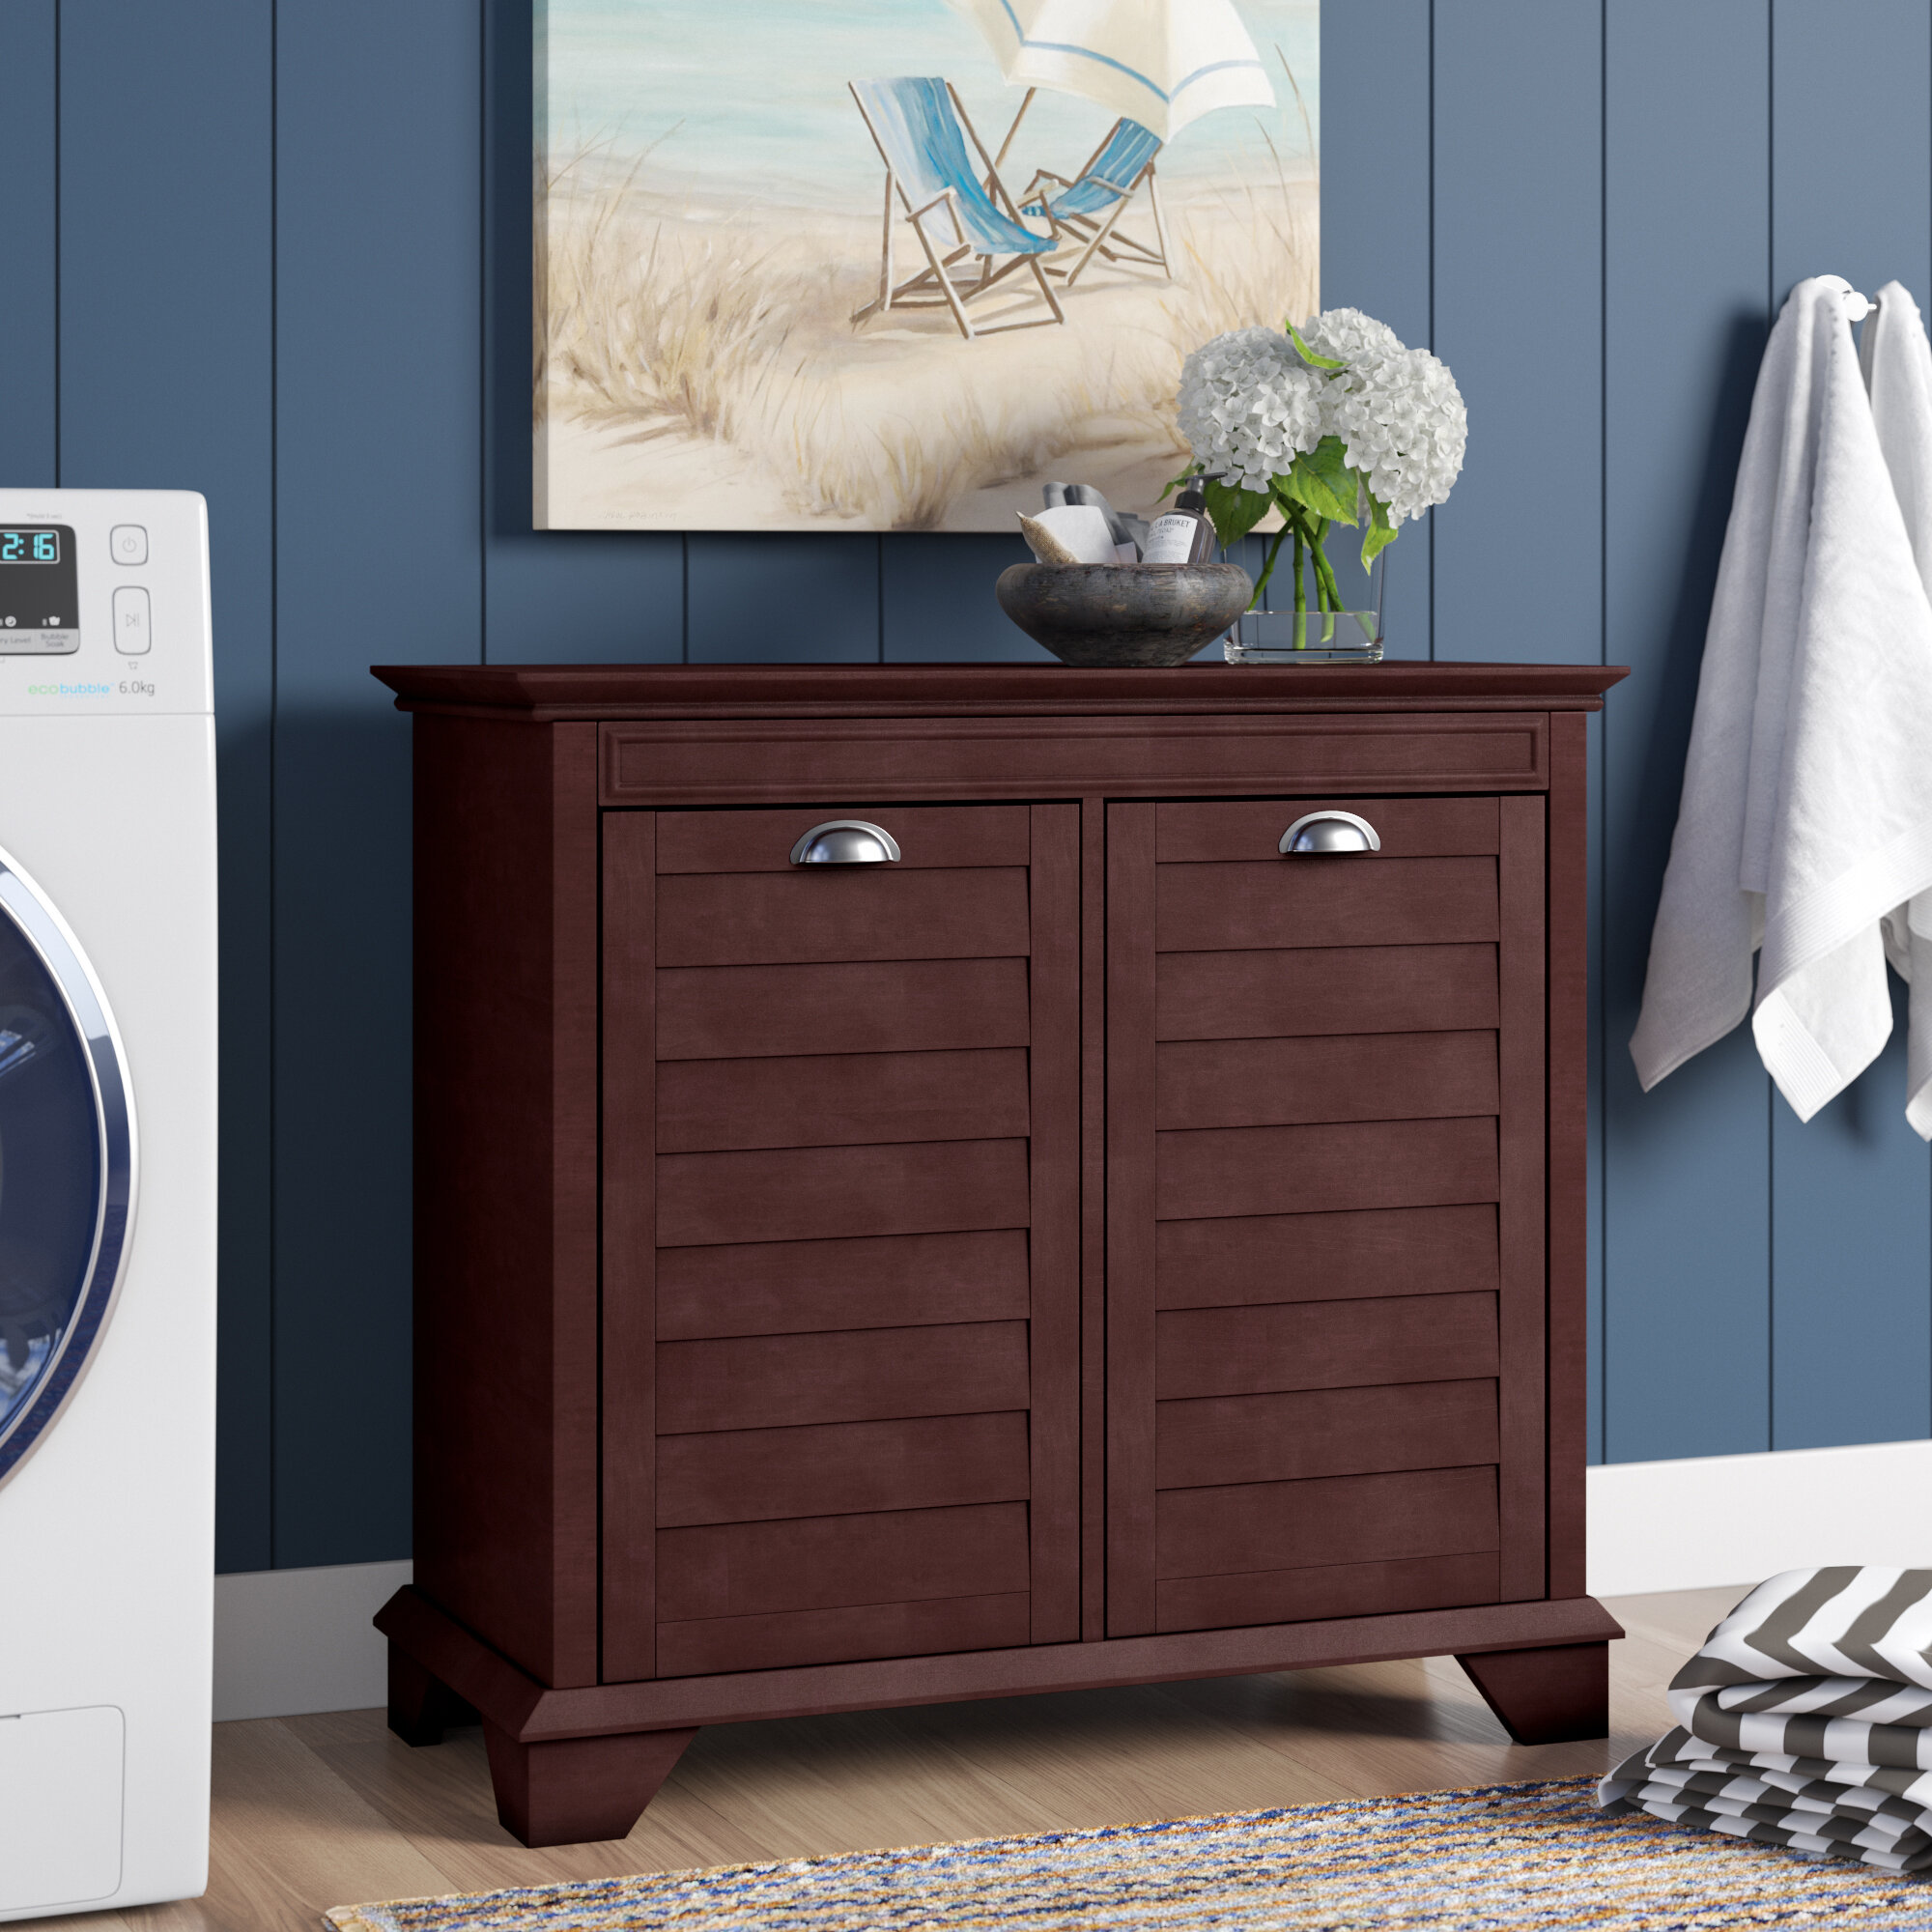 Picture of: Laundry Hamper Cabinets You Ll Love In 2020 Wayfair